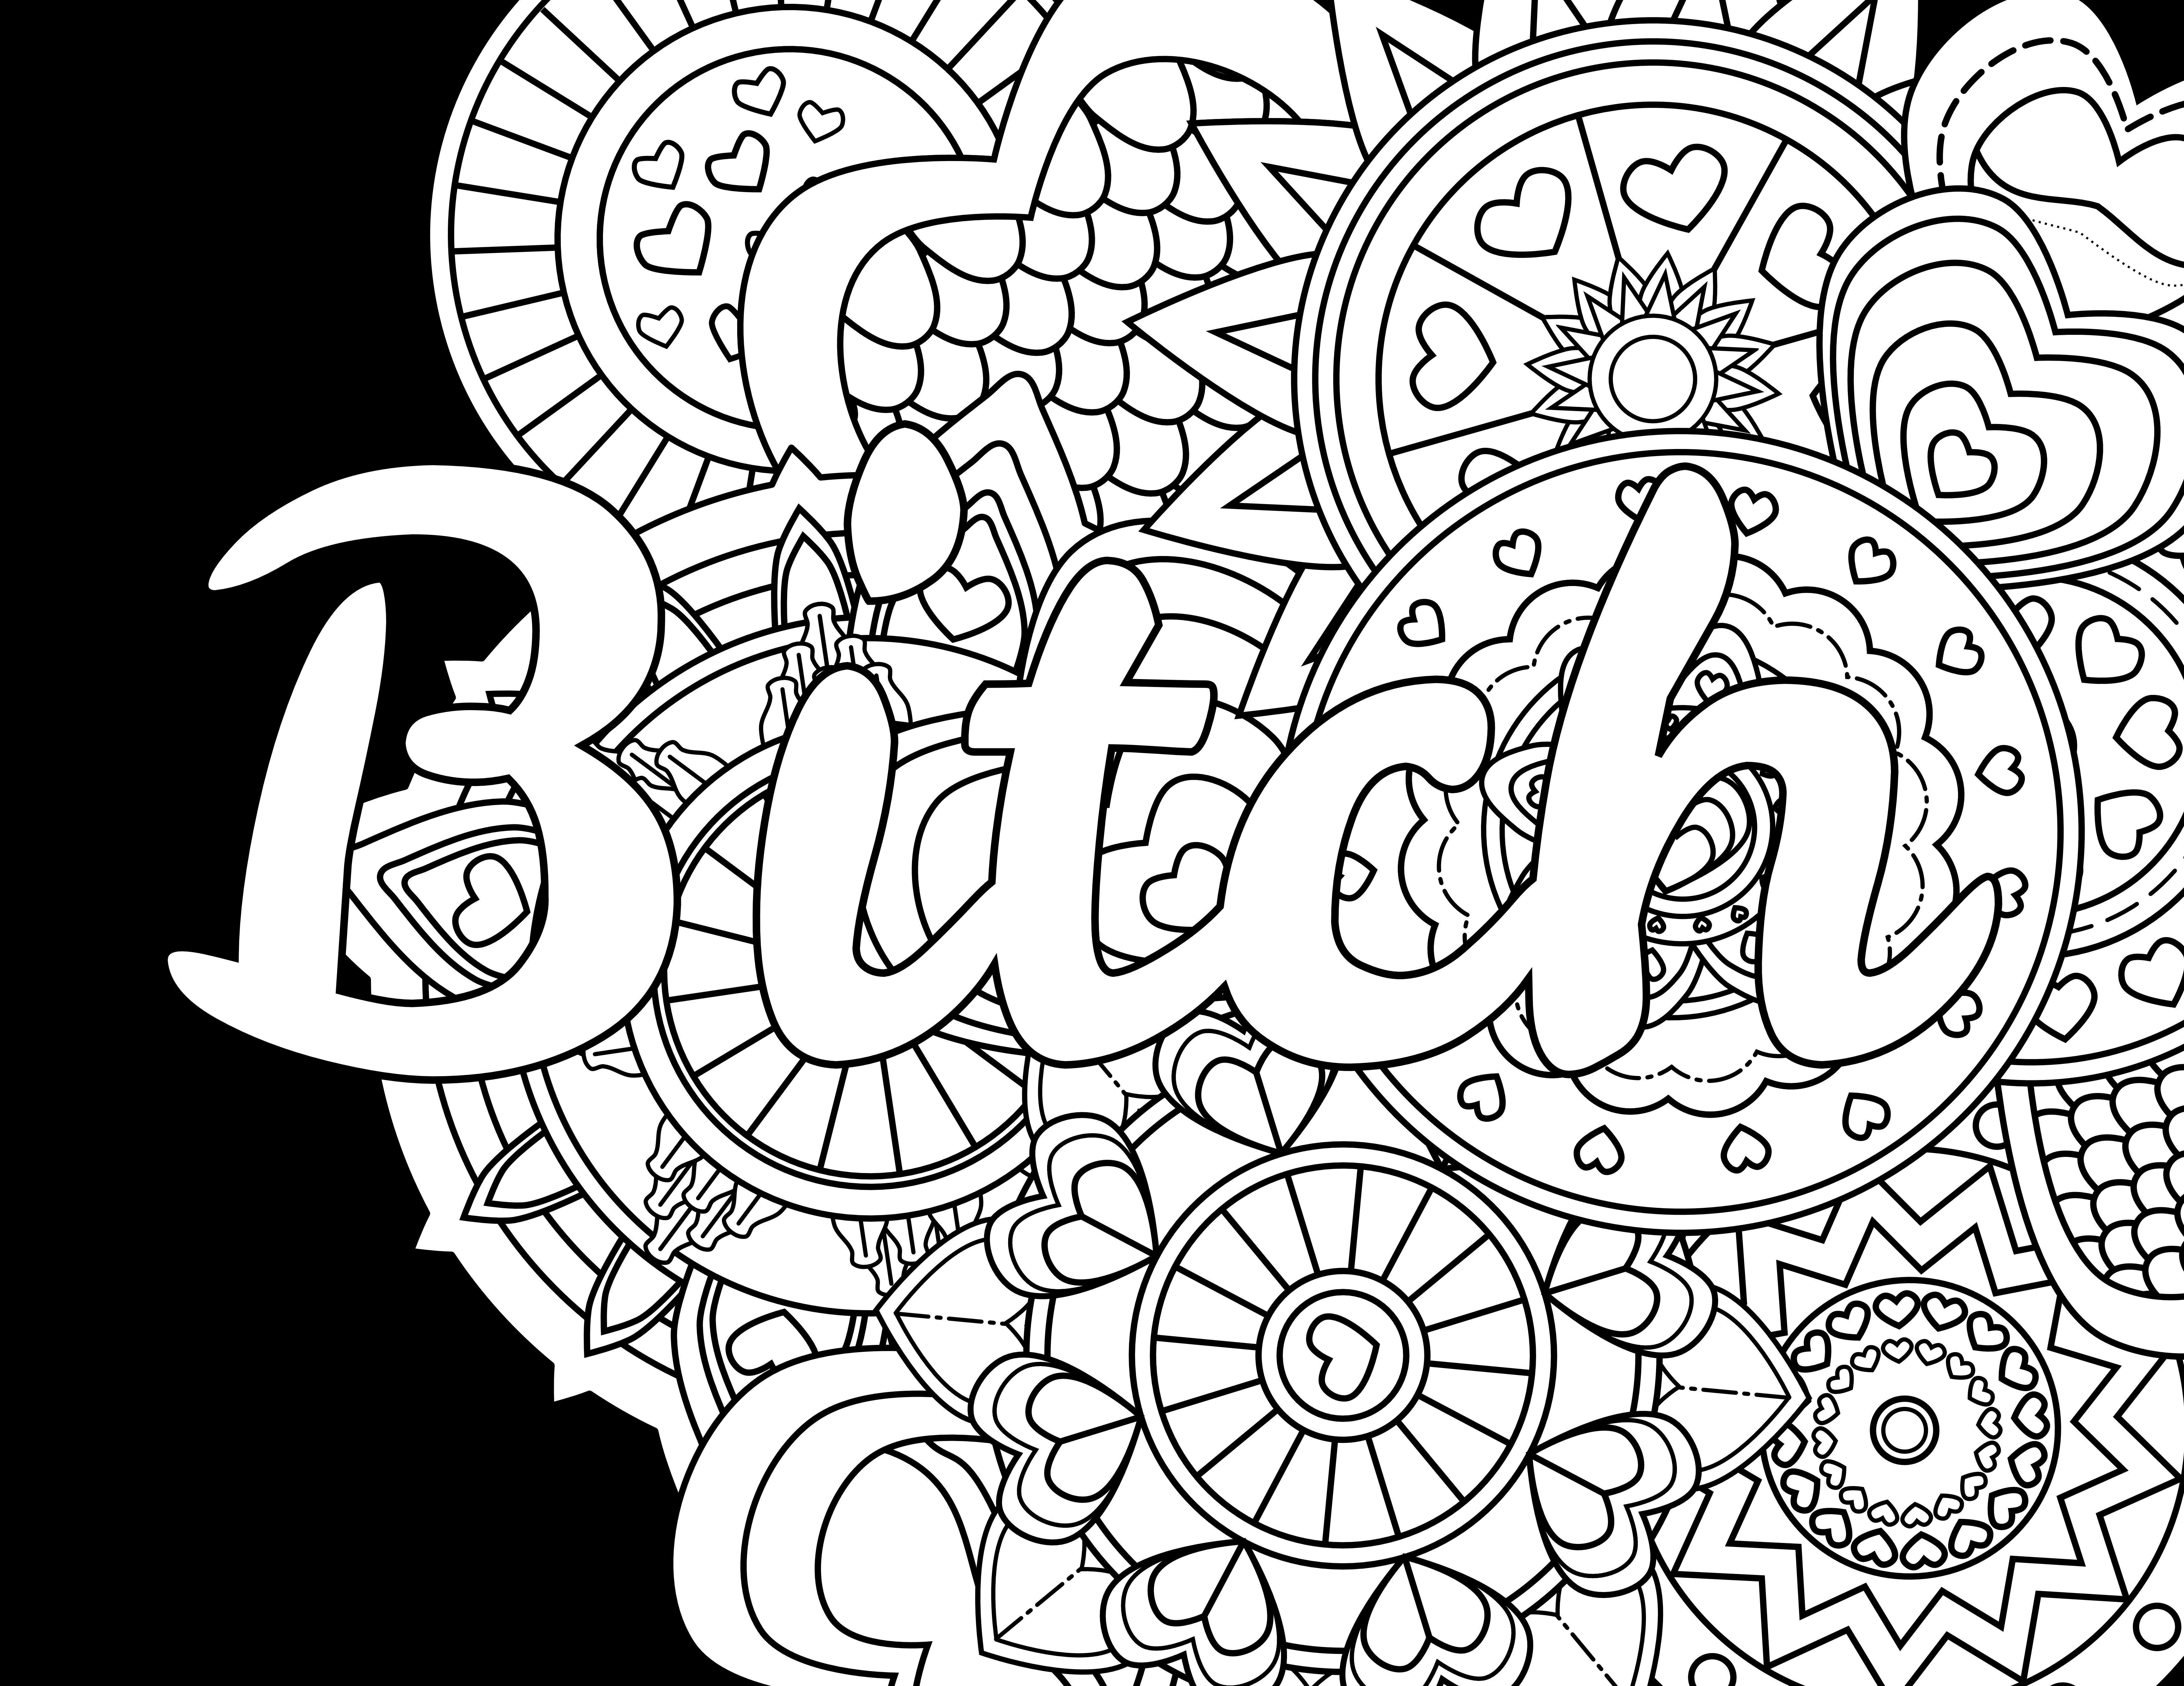 Swear word coloring pages etsy - Get Your Swear Word Adult Coloring Book And Free Swear Word Coloring Pages Here